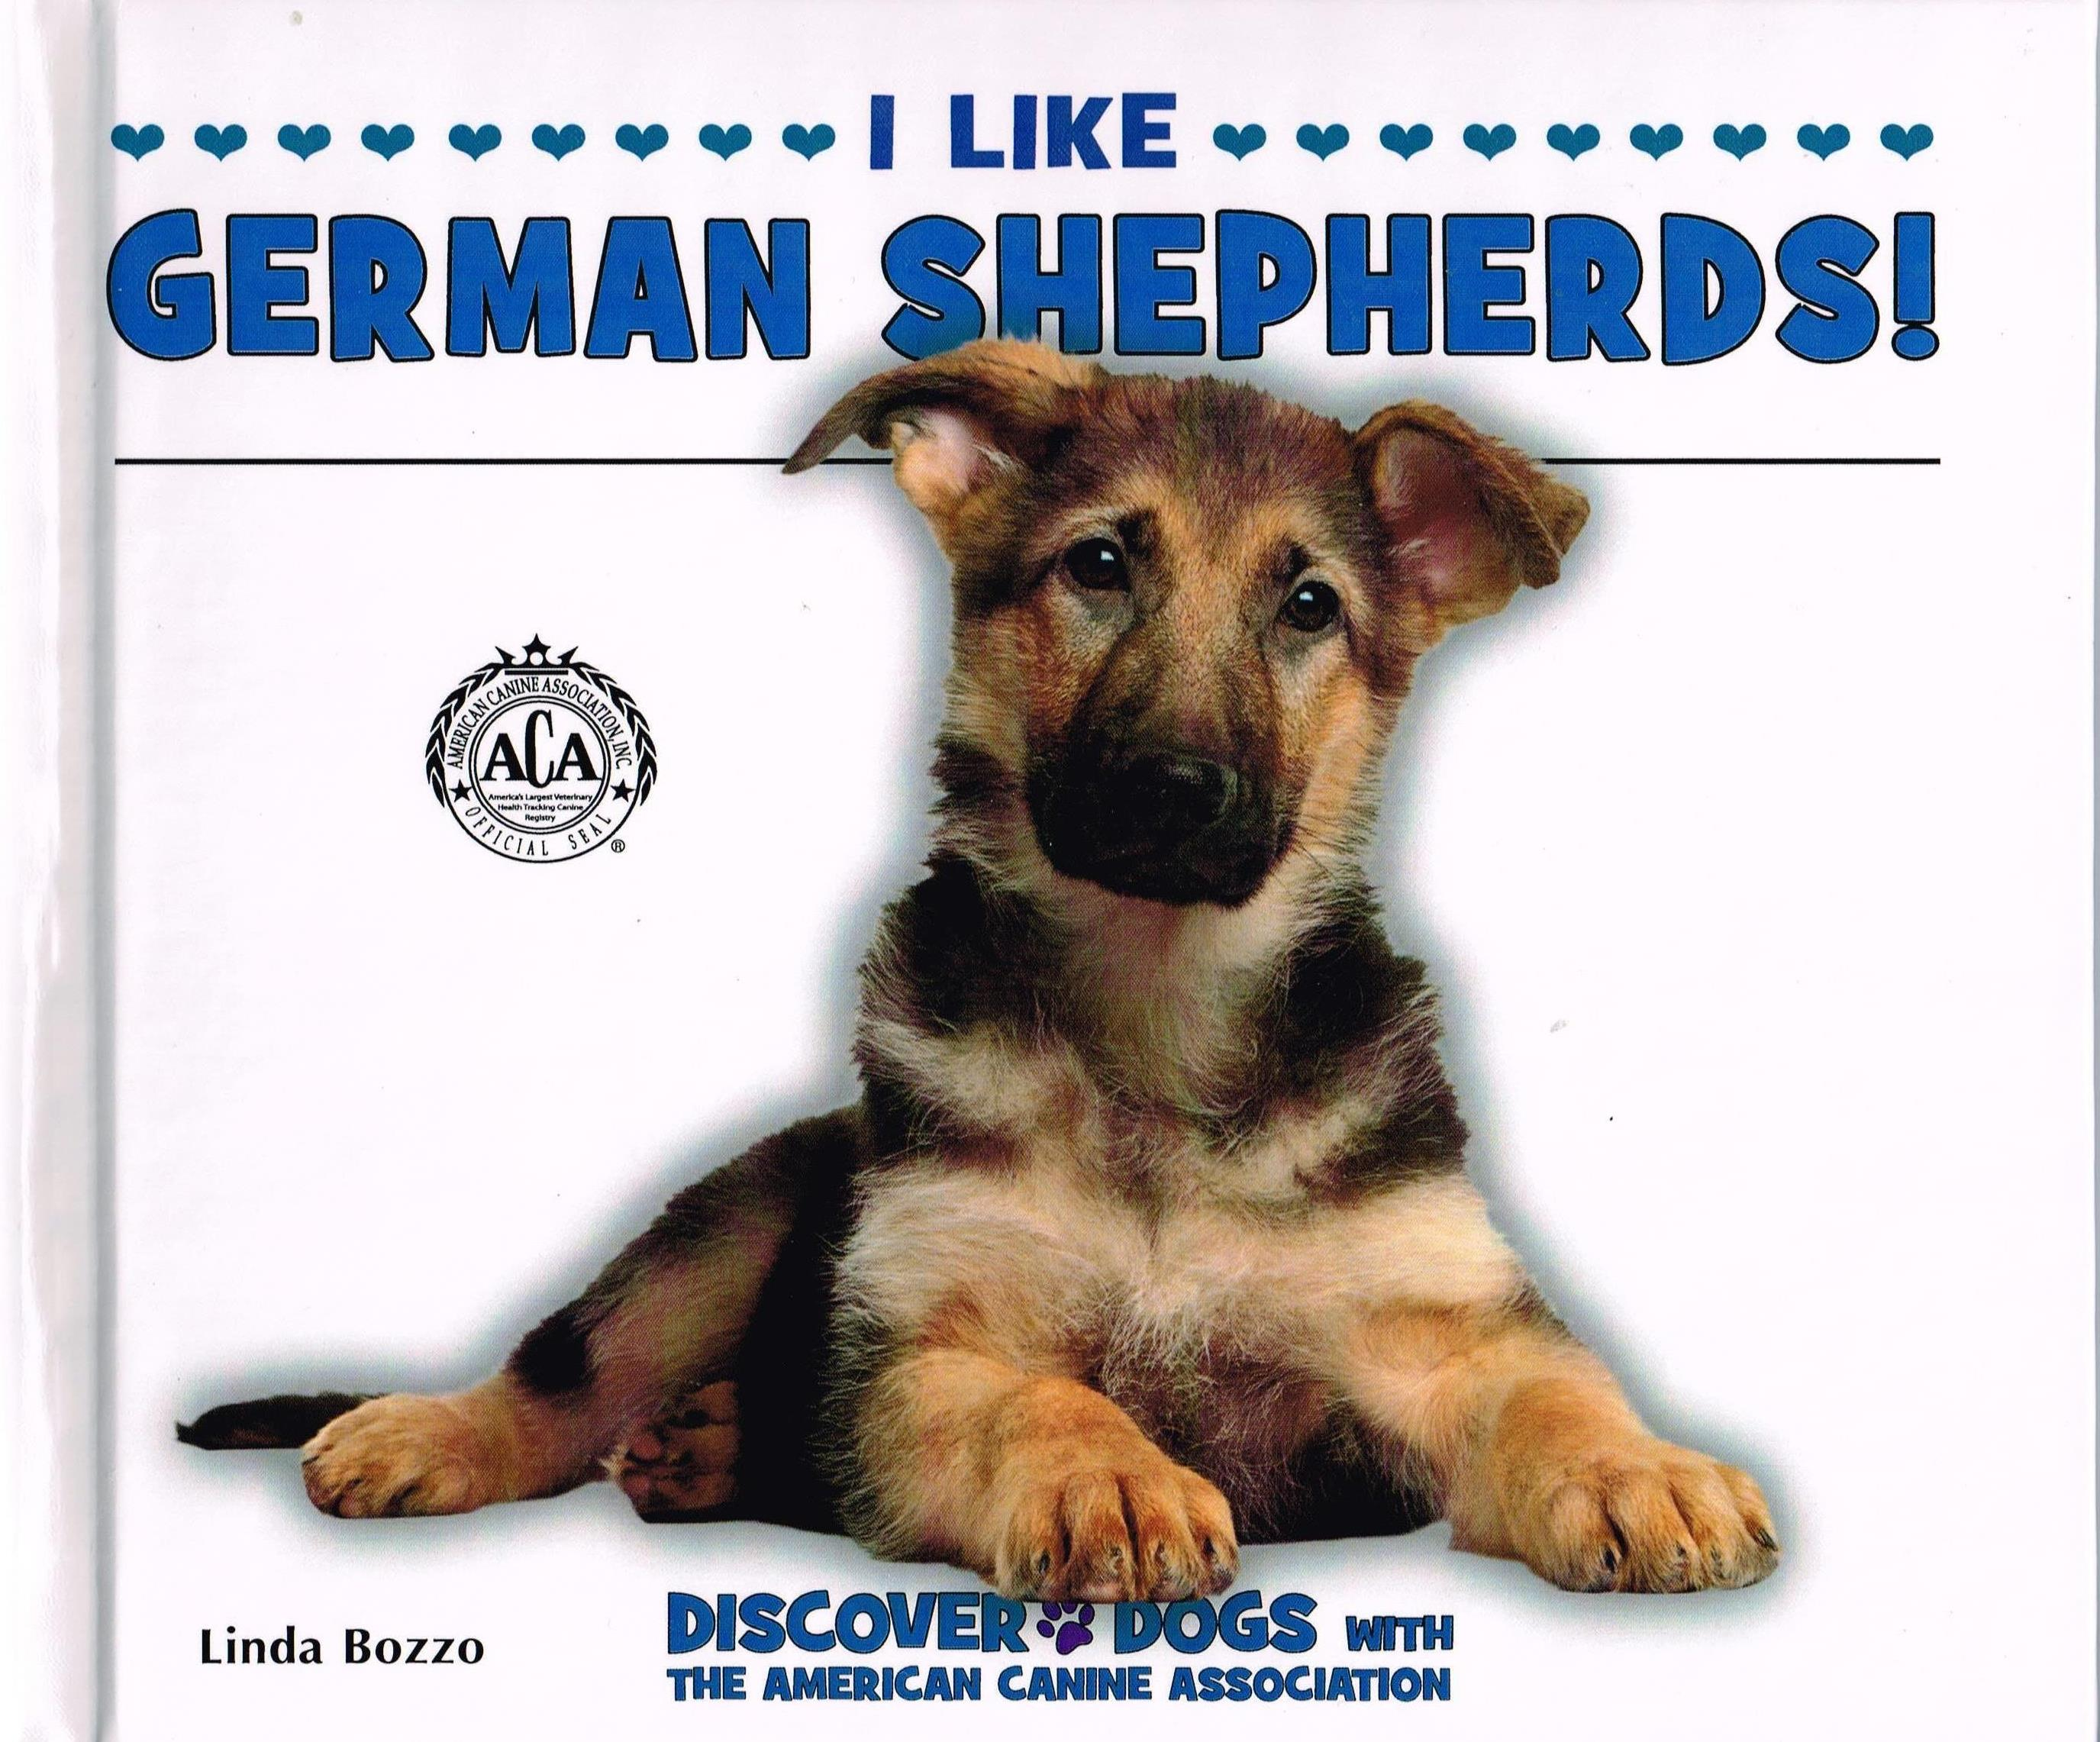 I Like German Shepherds!